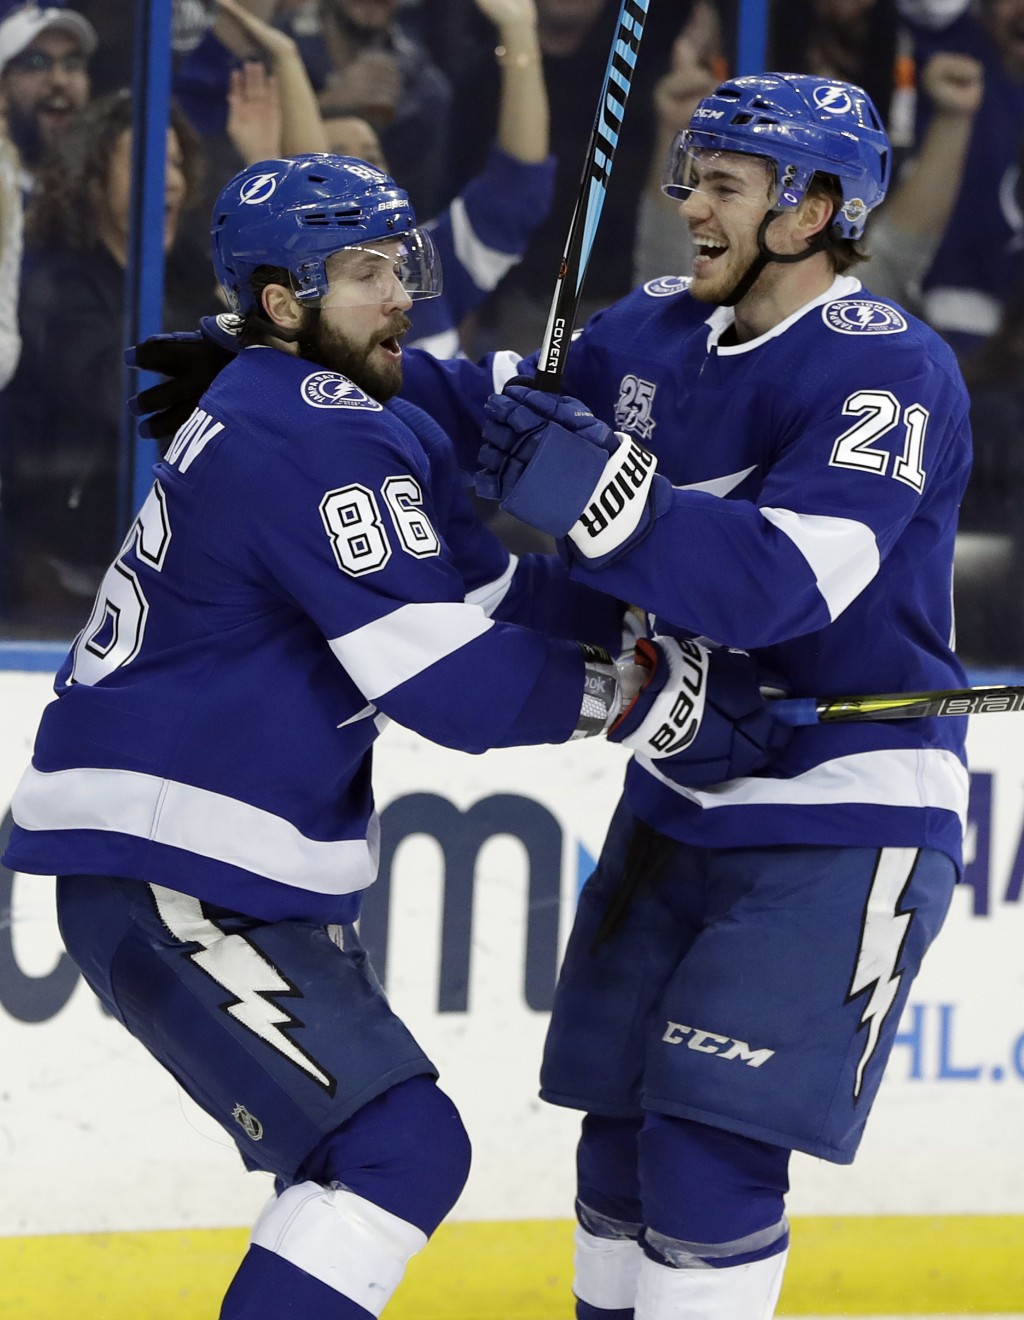 Tampa Bay Lightning center Brayden Point (21) celebrates his goal against the Philadelphia Flyers with right wing Nikita Kucherov (86), of Russia, dur...